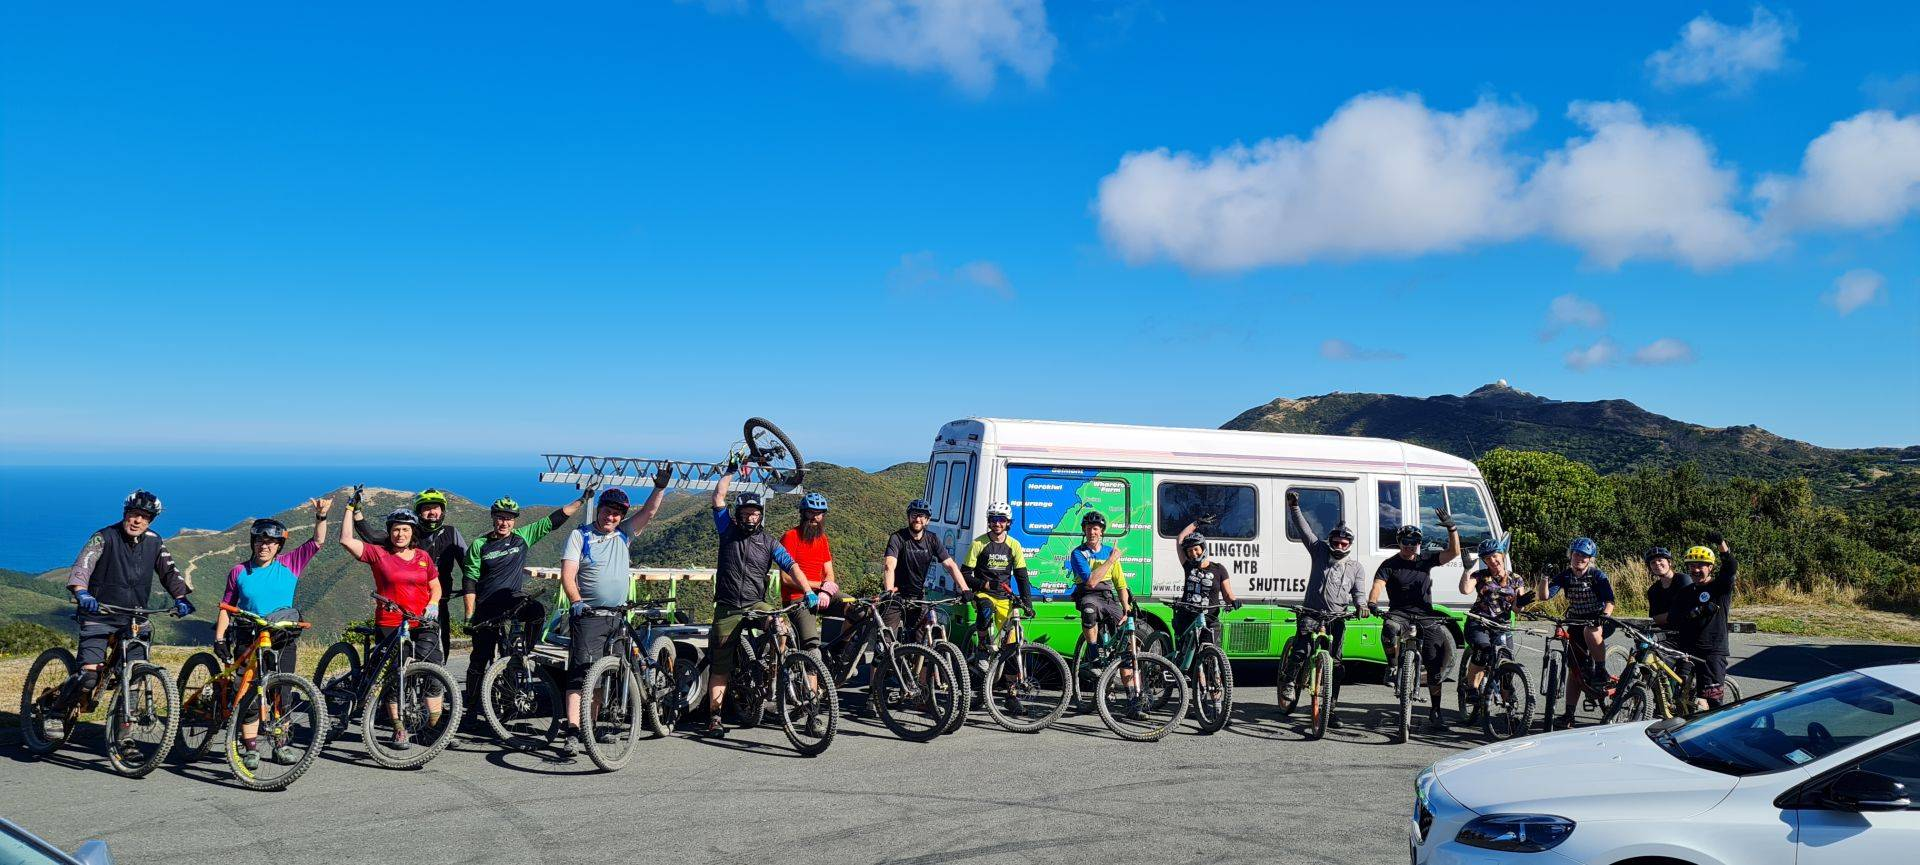 Group of cyclists infront of shuttle